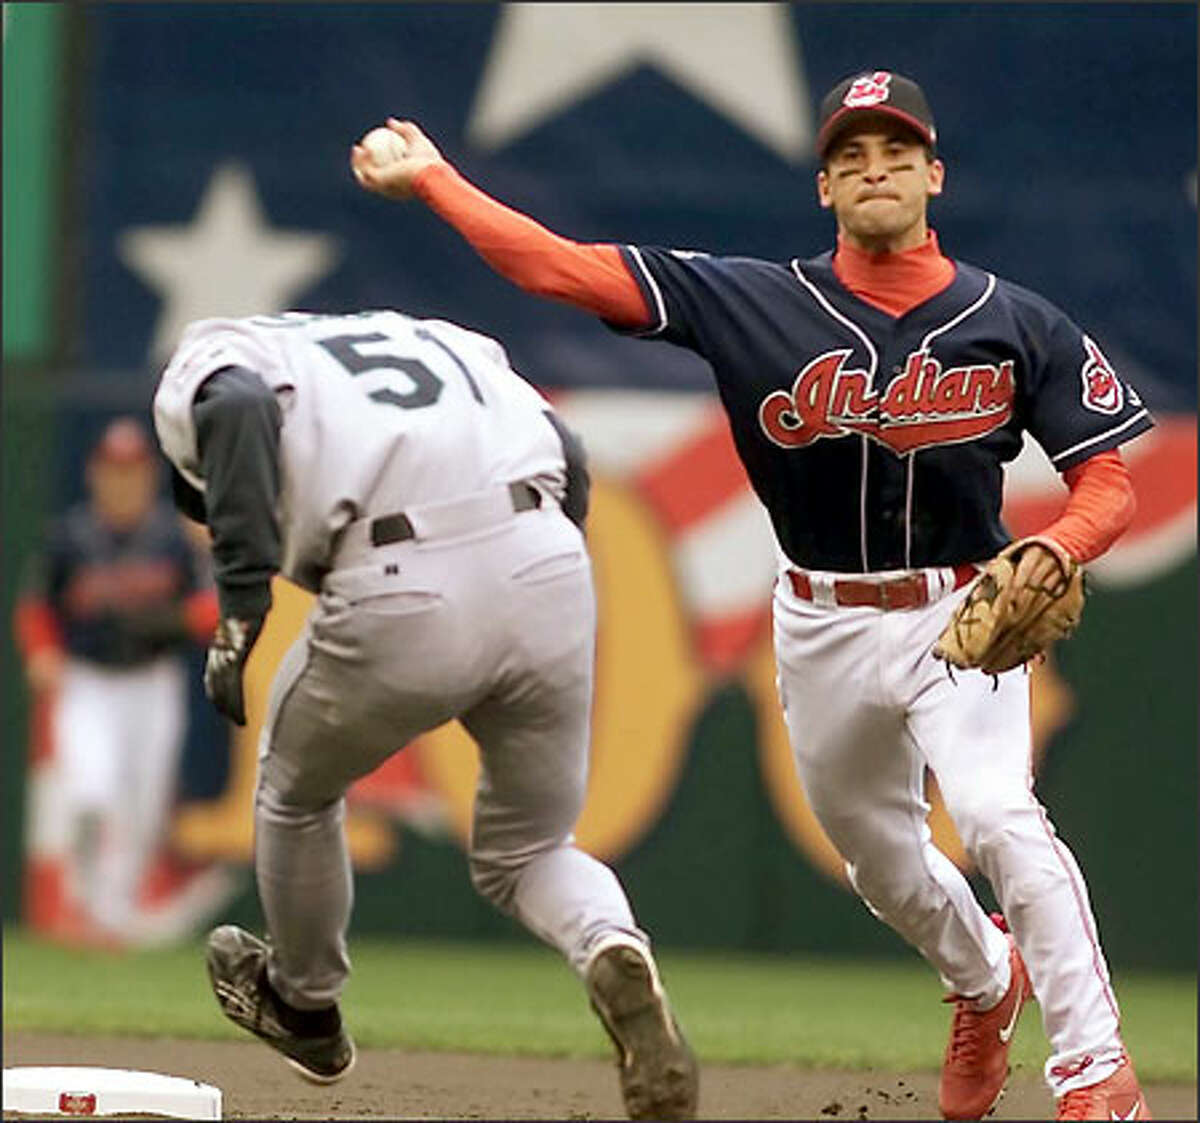 Ichiro ducks but is out at second as Cleveland shortstop Omar Vizquel turns the double play in the first inning of play.